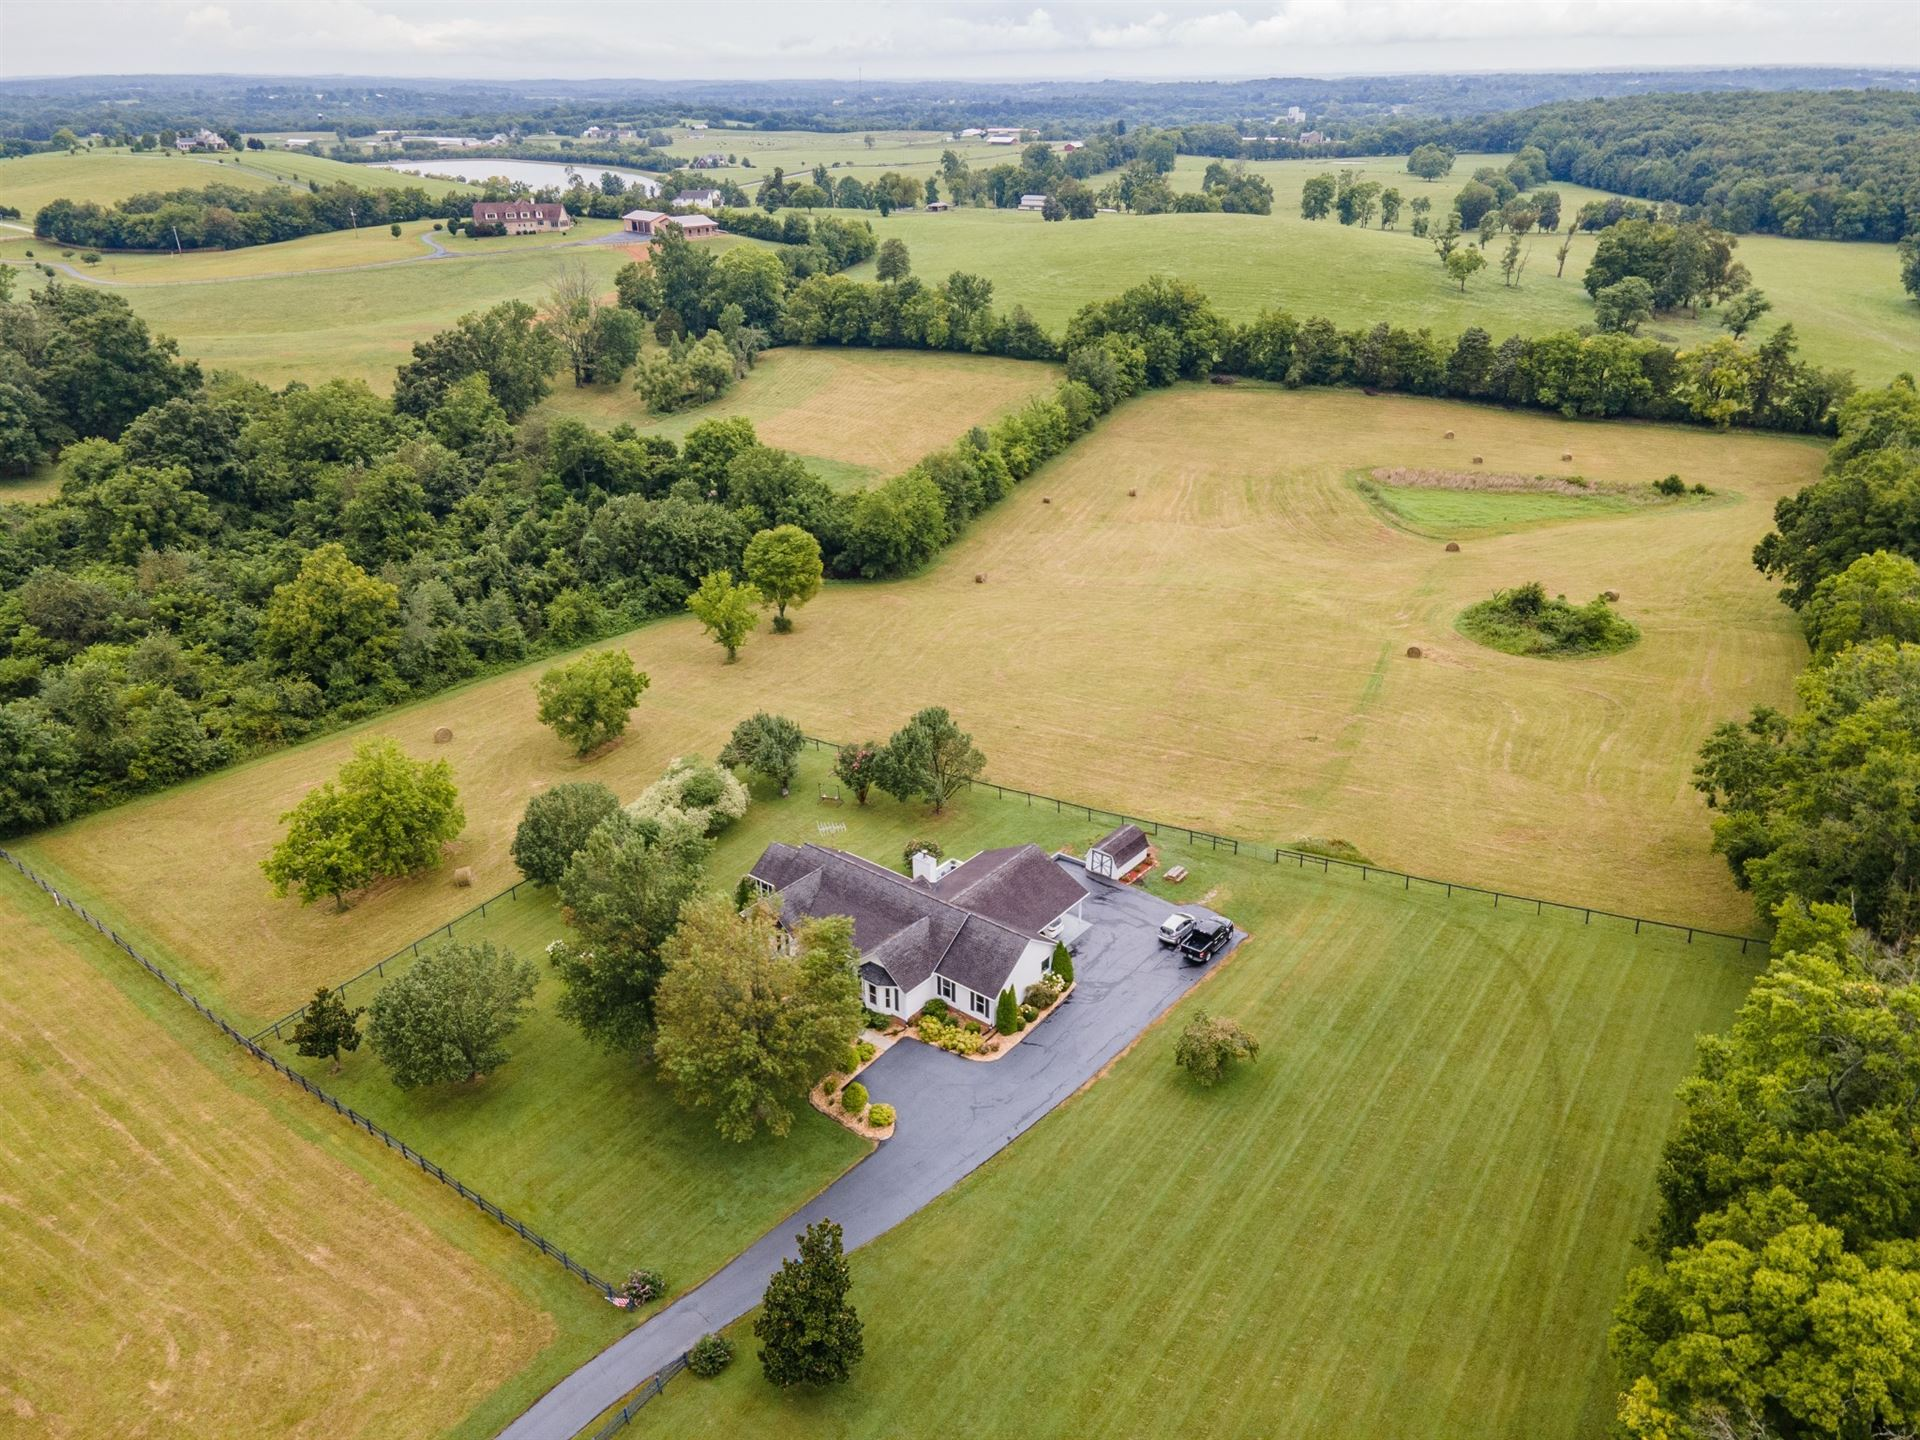 Photo for 349 Naron Rd, Shelbyville, TN 37160 (MLS # 2292151)